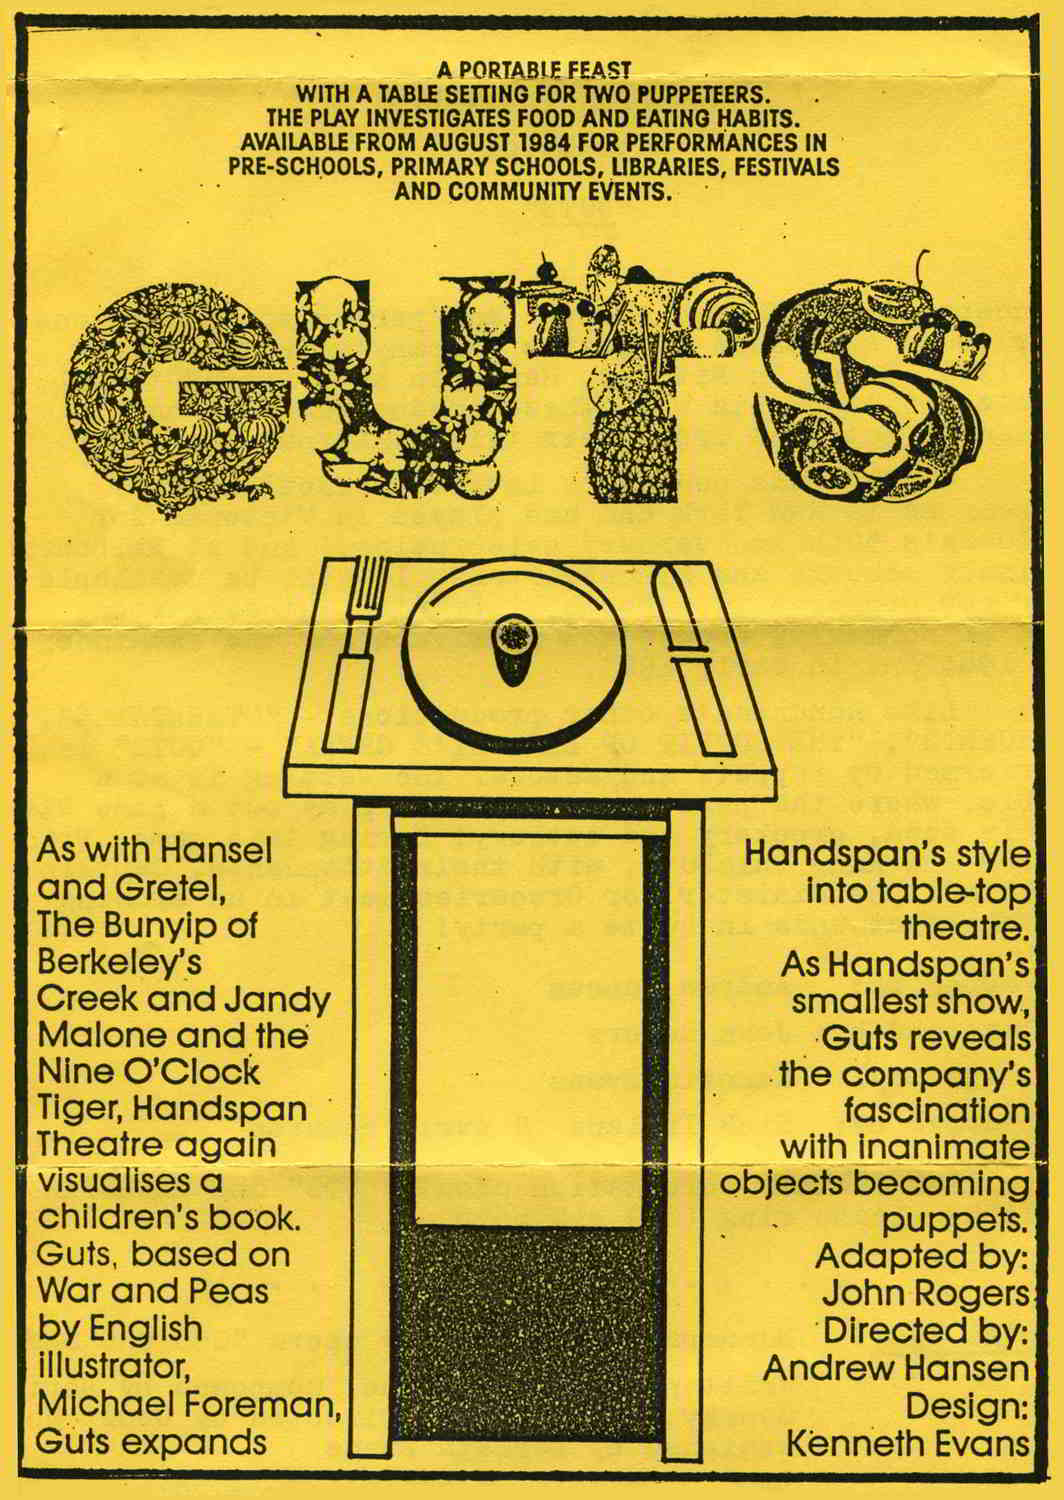 paper flyer with black writing on yellow background with line drawn table and ornamental title lettering